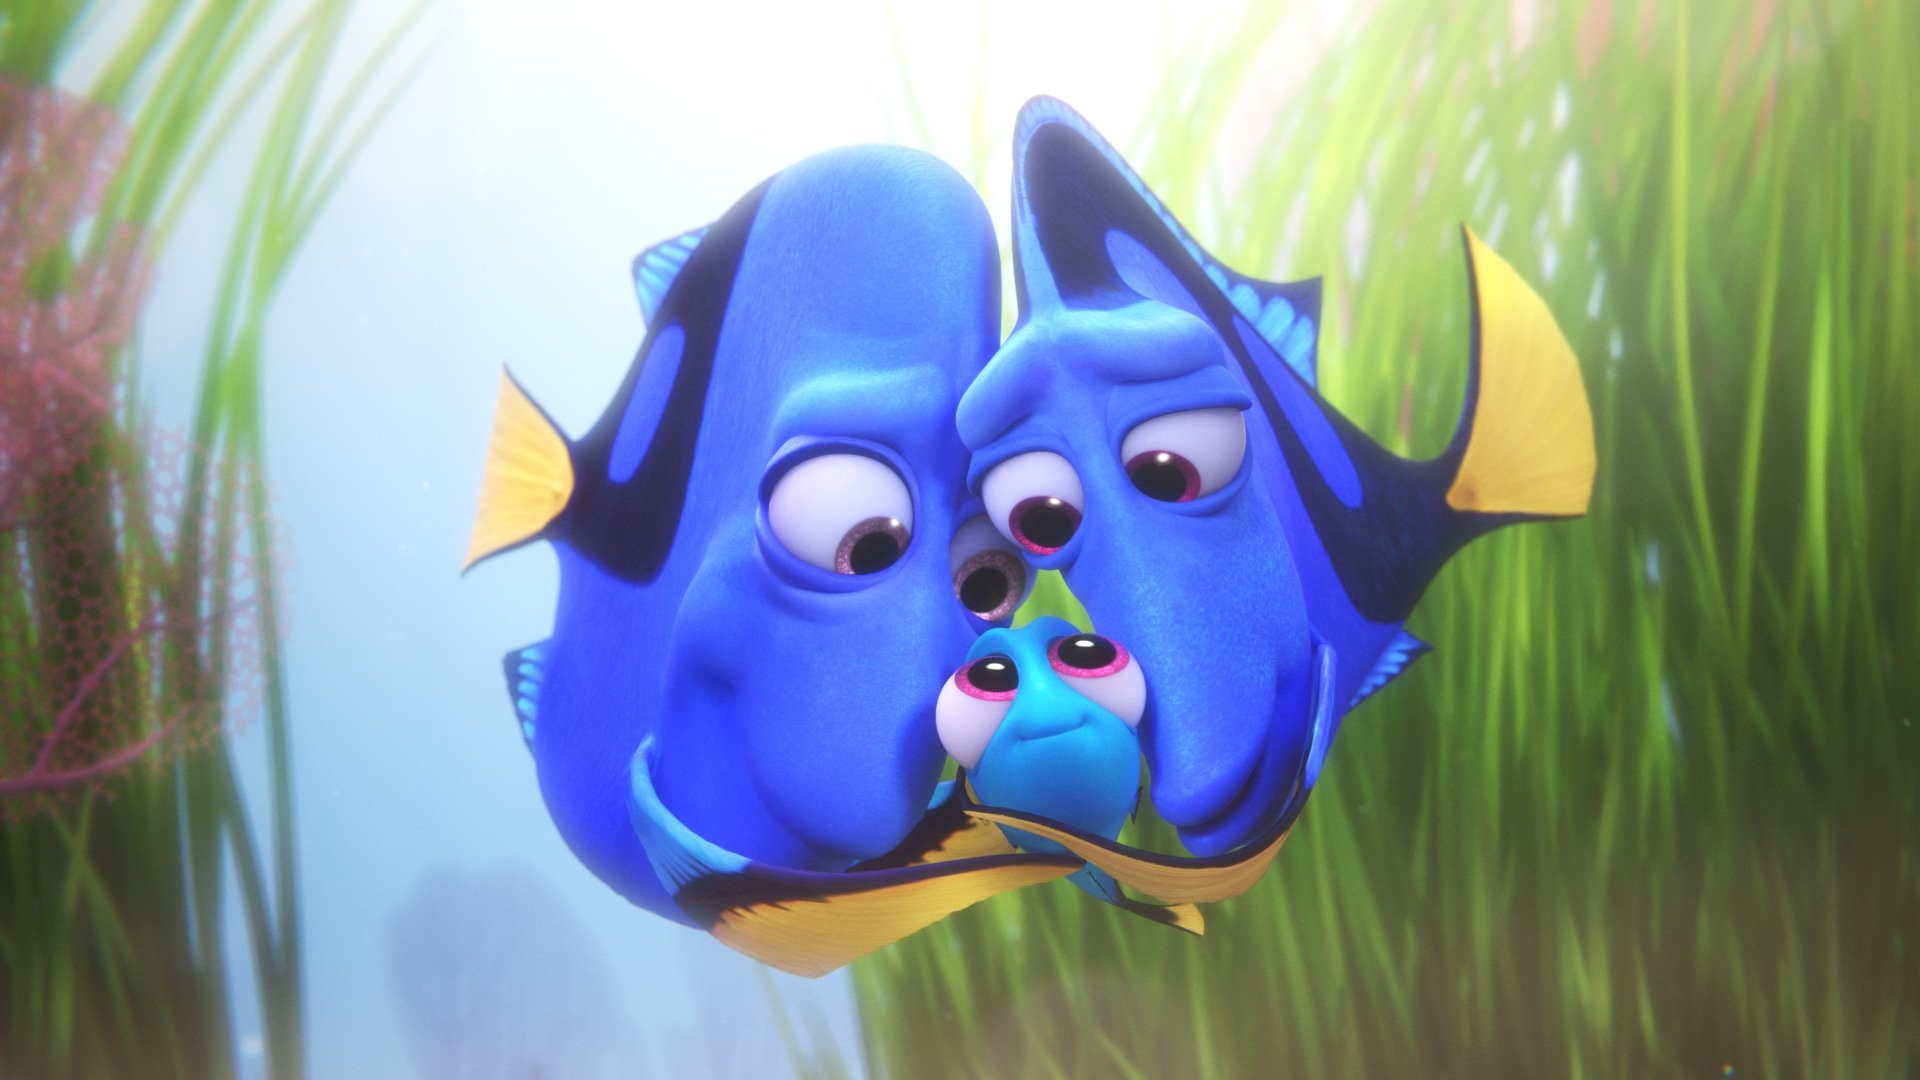 The Most A-Dory-ble Baby Dory in a New Finding Dory Clip